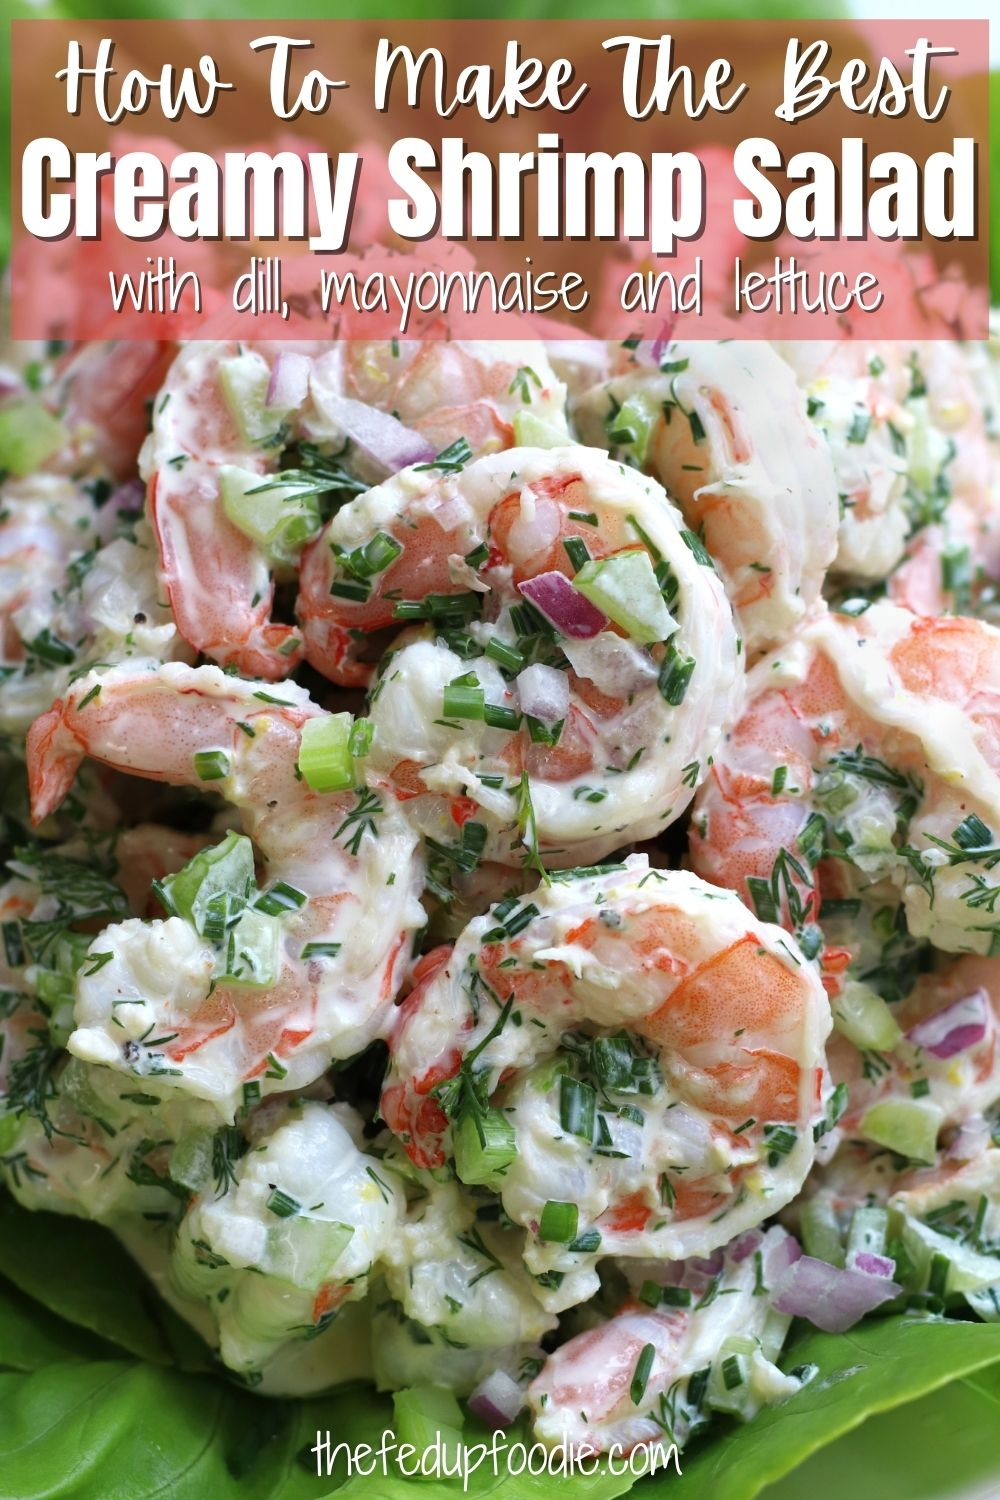 Easy Shrimp Salad with fresh dill, lemon, red onion and mayonnaise on a bed of lettuce. Fast and refreshing, this recipe is one of our favorite ways to eat dinner on hot summer days. #ShrimpSalad #ShrimpSaladRecipes #ShrimpSaladHealthy #ShrimpSaladRecipesLettuce #ShrimpSaladRecipesEasy #ShrimpSaladWithDill #ShrimpSaladWithMayonnaise #ShrimpSaladWithLettuce #ColdShrimpSaladRecipes #ClassicShrimpSalad